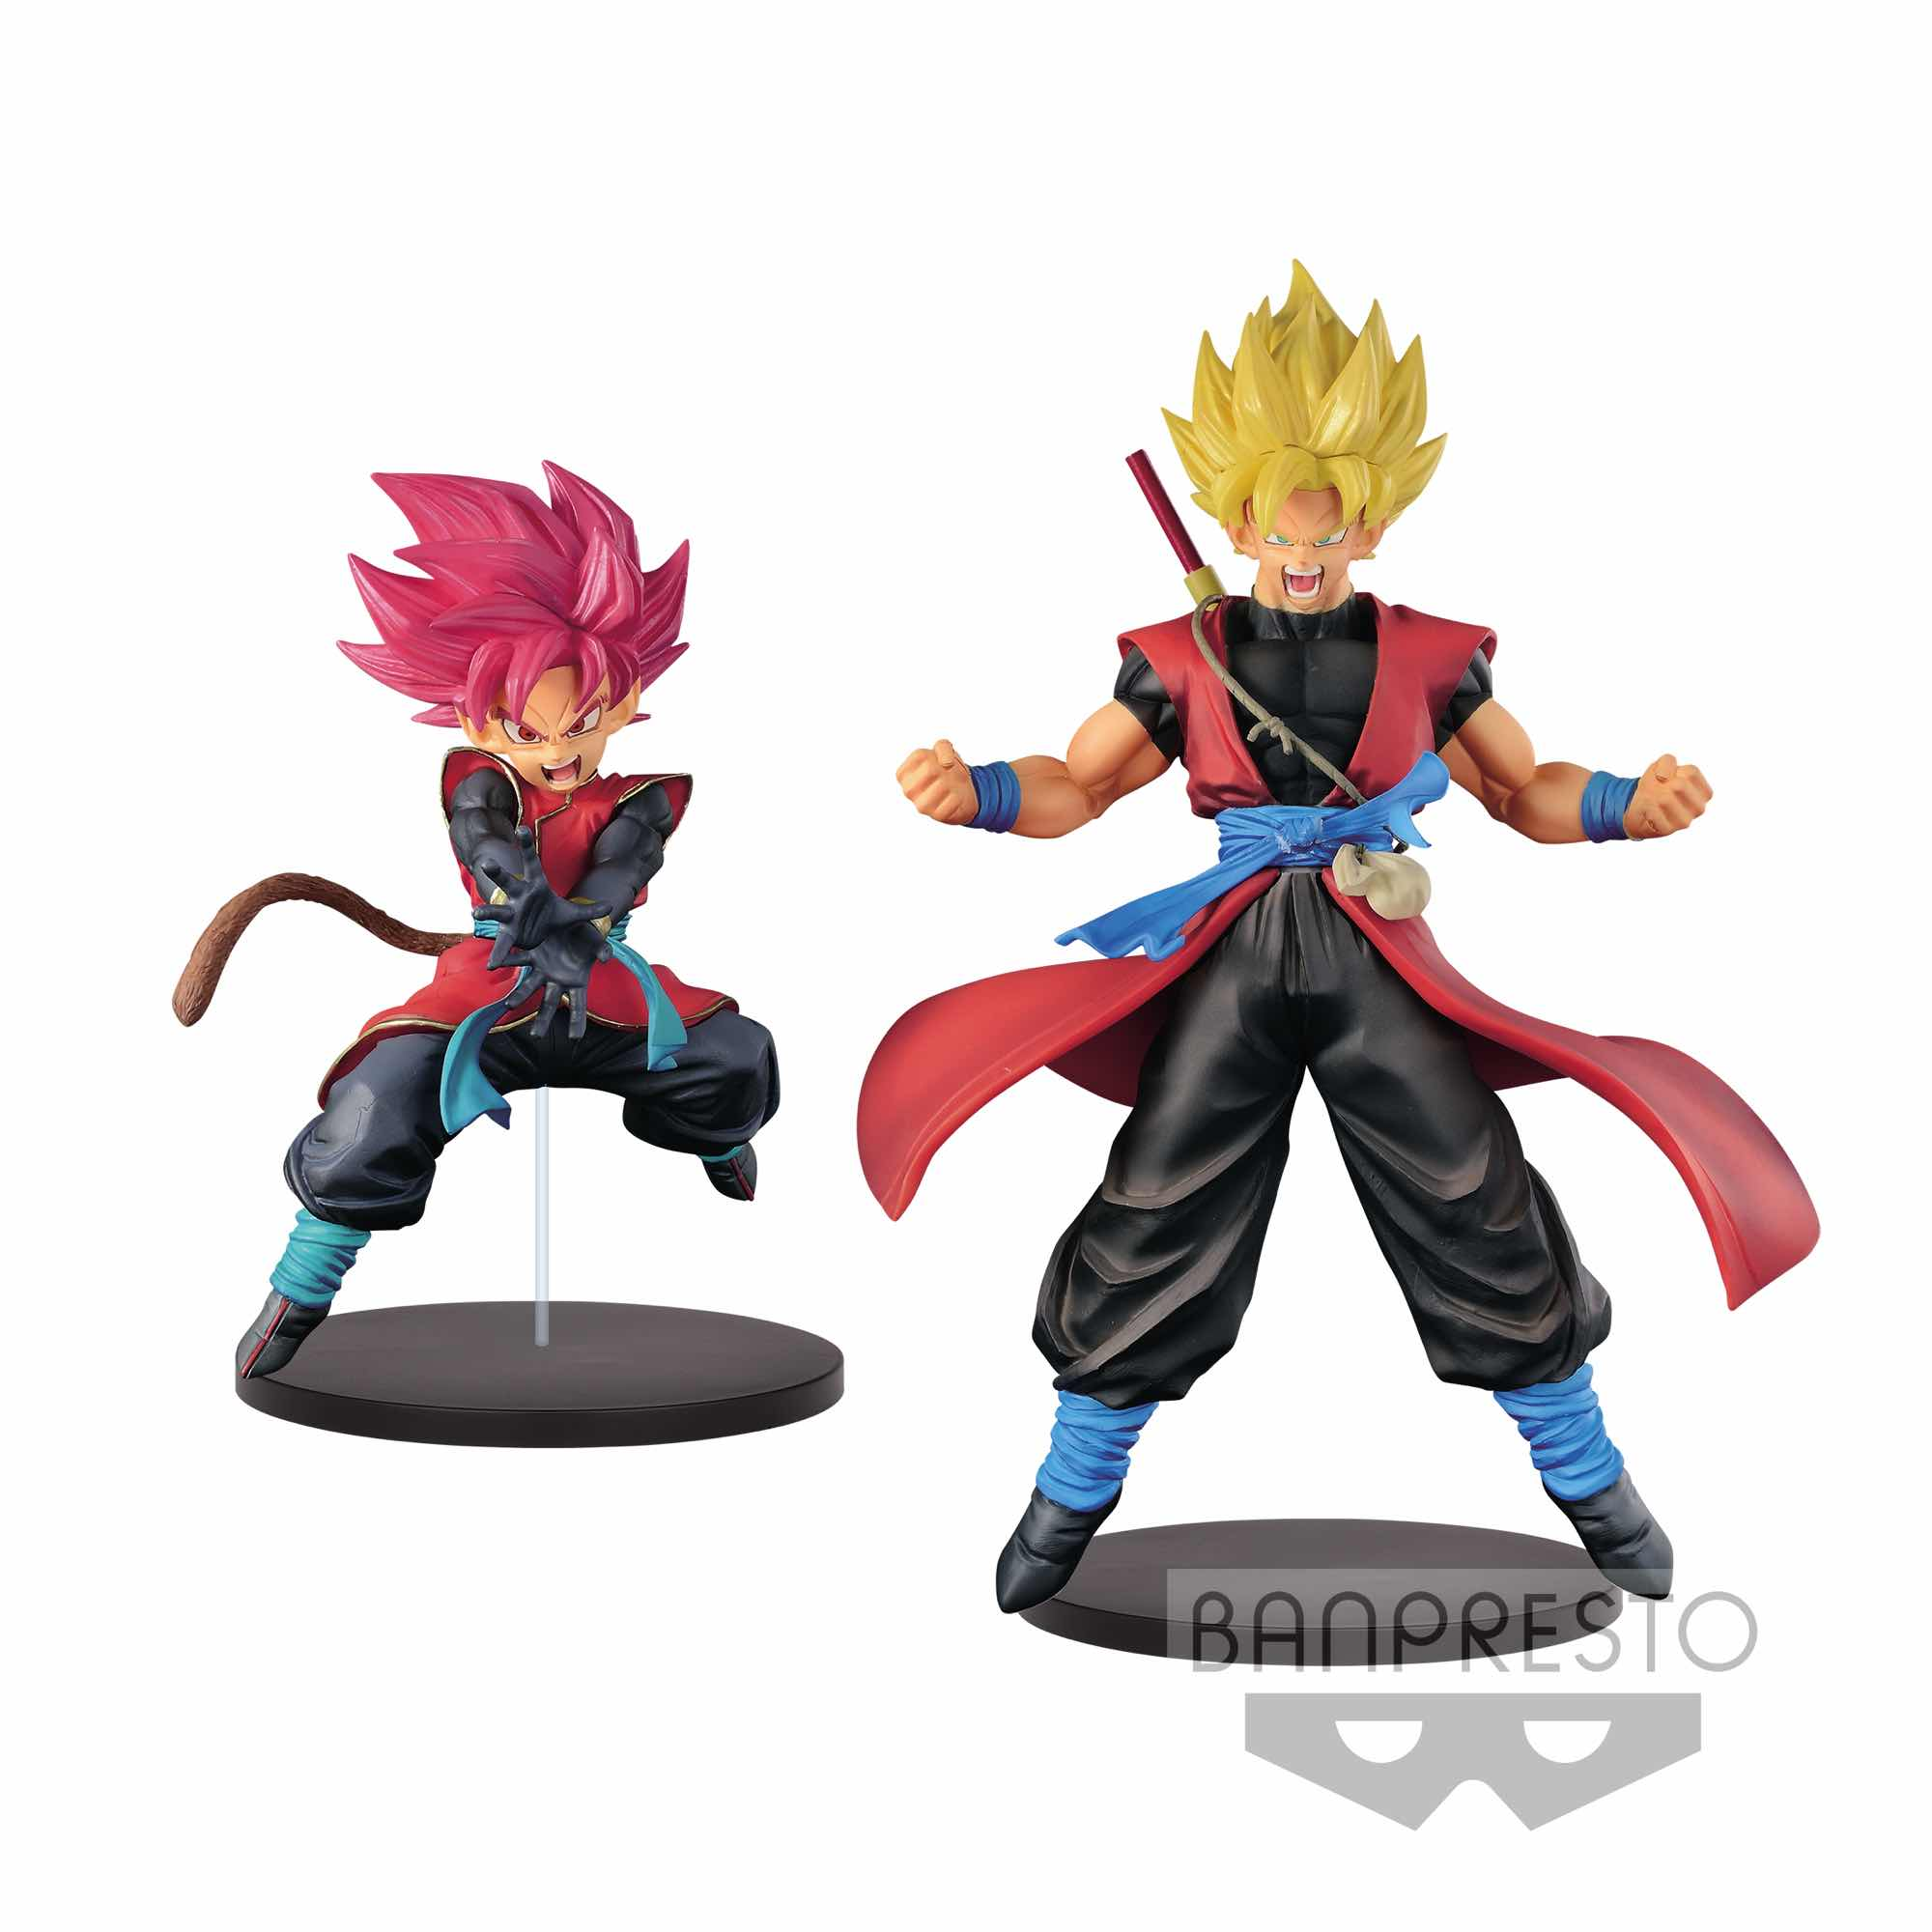 SAIYAN (CHICO) AVATAR & SON GOKU XENO SET 2 FI...